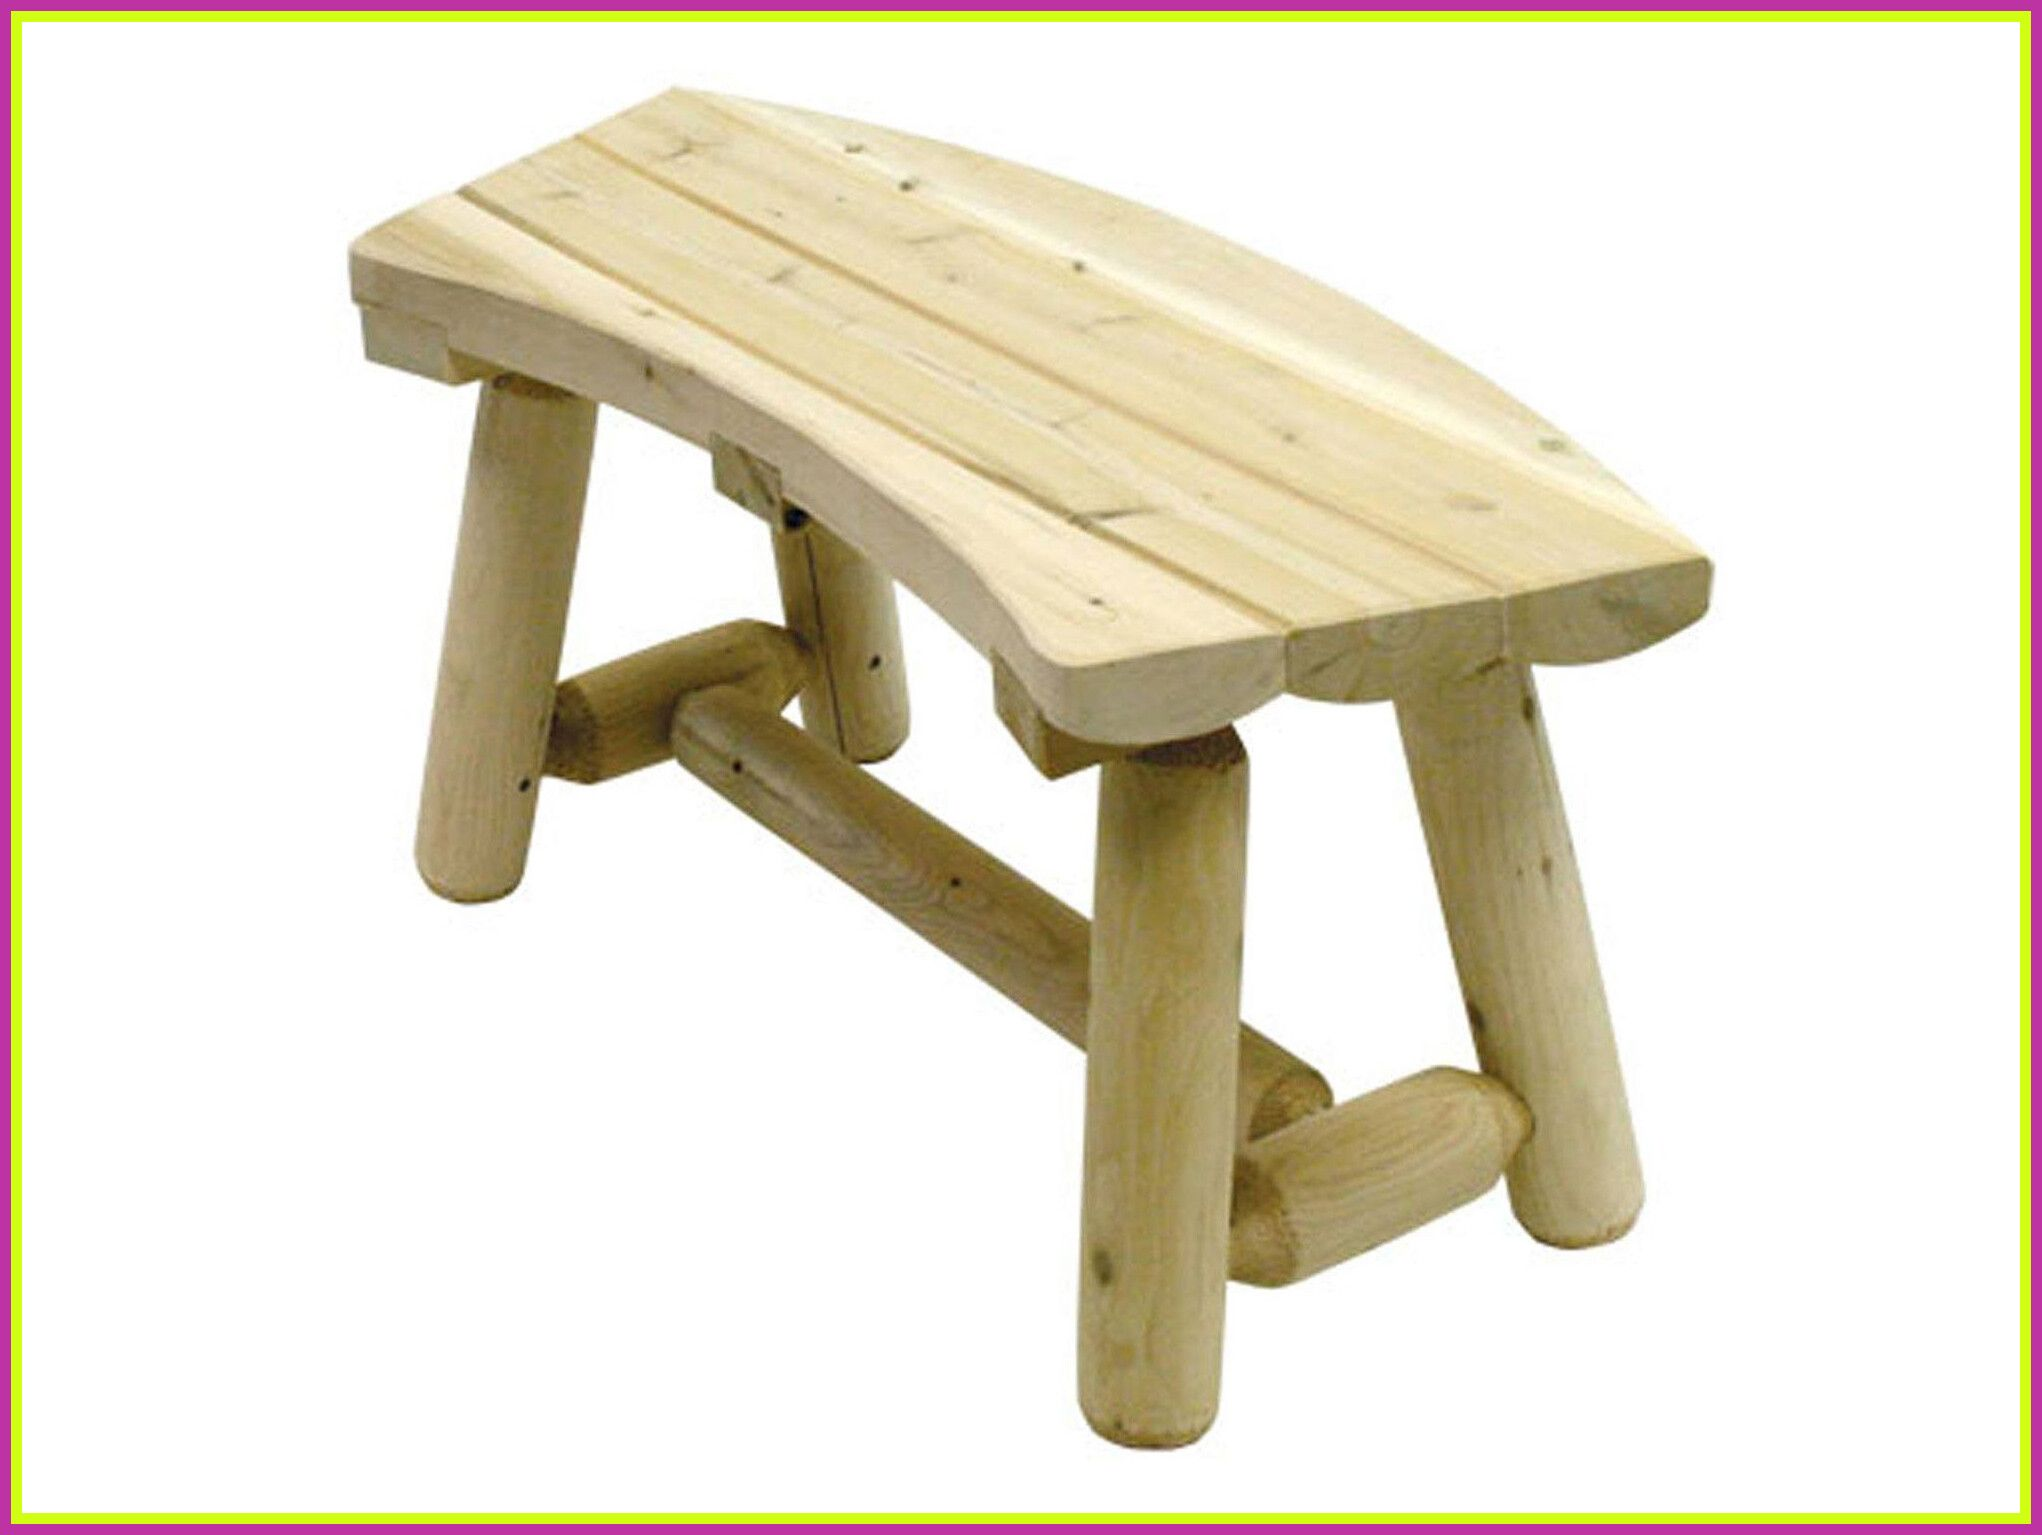 47 Reference Of Bench Indoor Curved In 2020 Indoor Bench Designs Wooden Bench Outdoor Bench